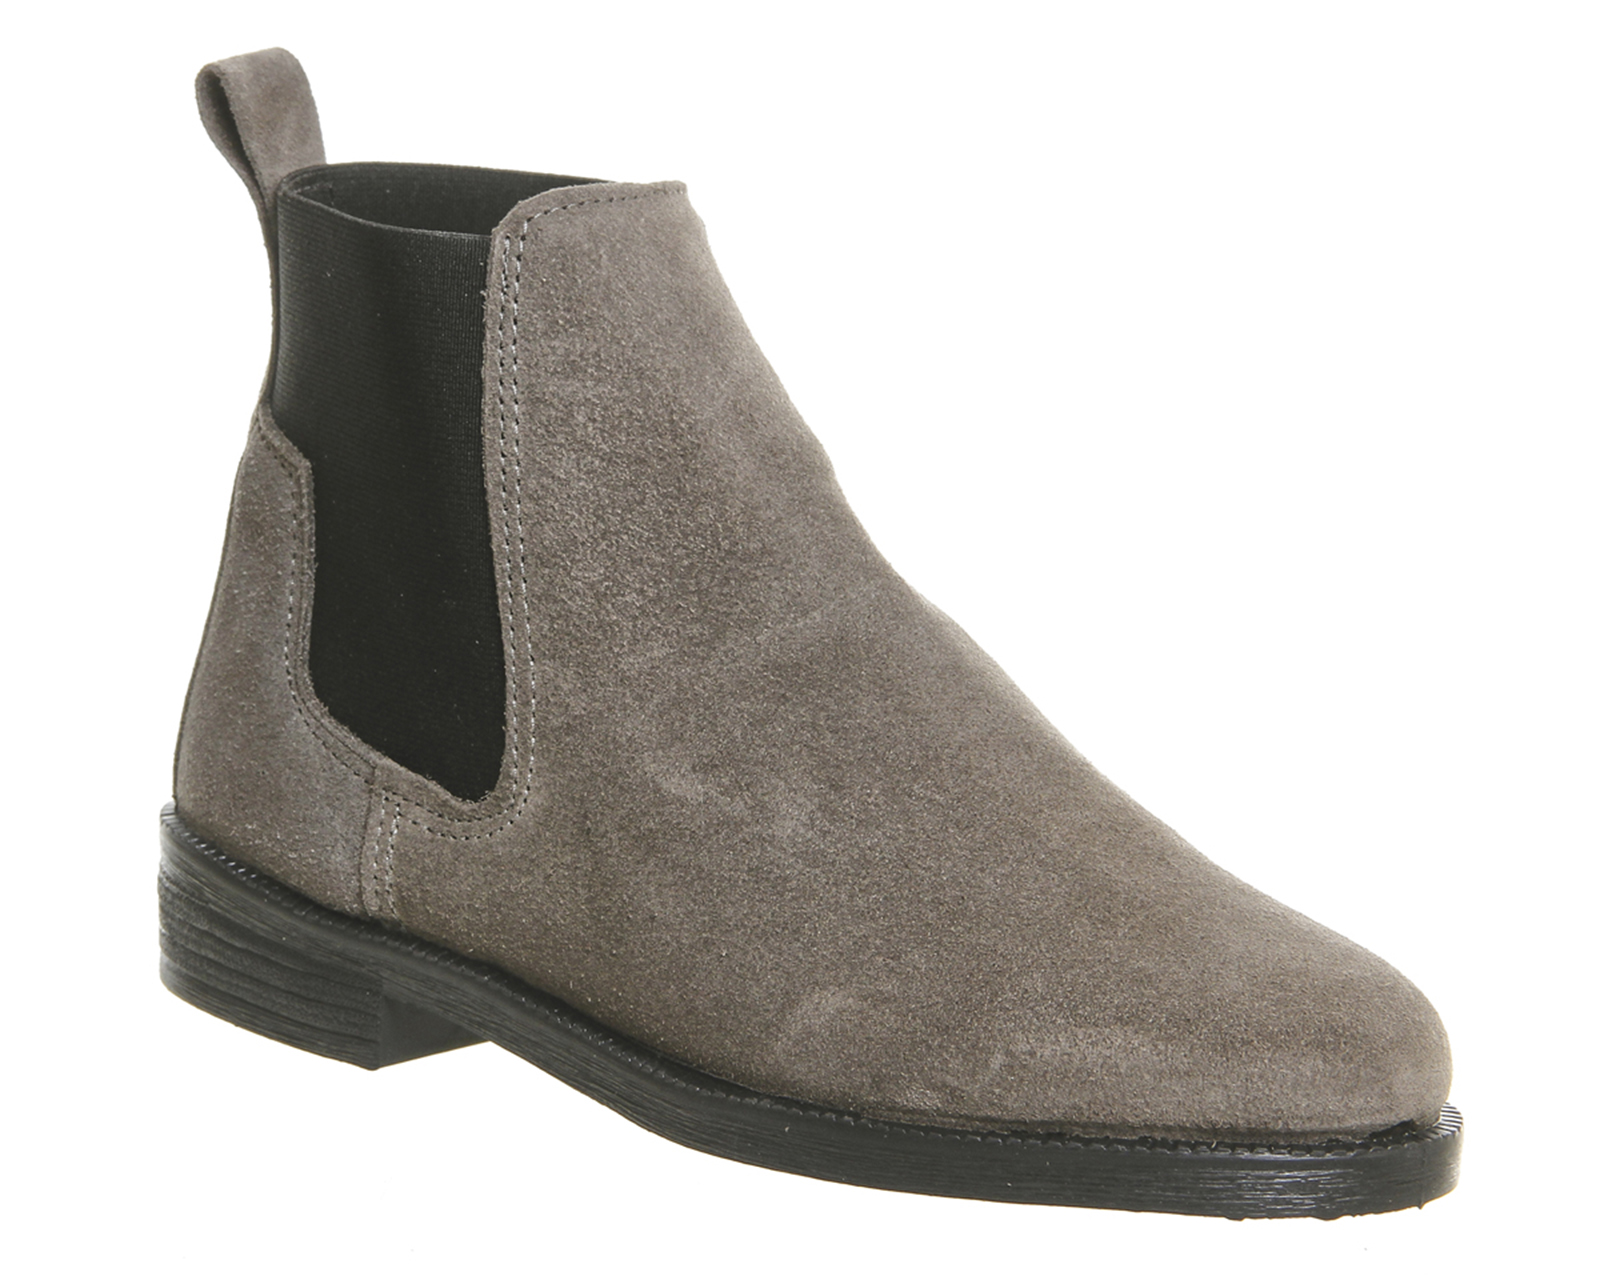 Elegant Shoes By Hudson Women39s Bronte Suede Heeled Chelsea Boots  Grey